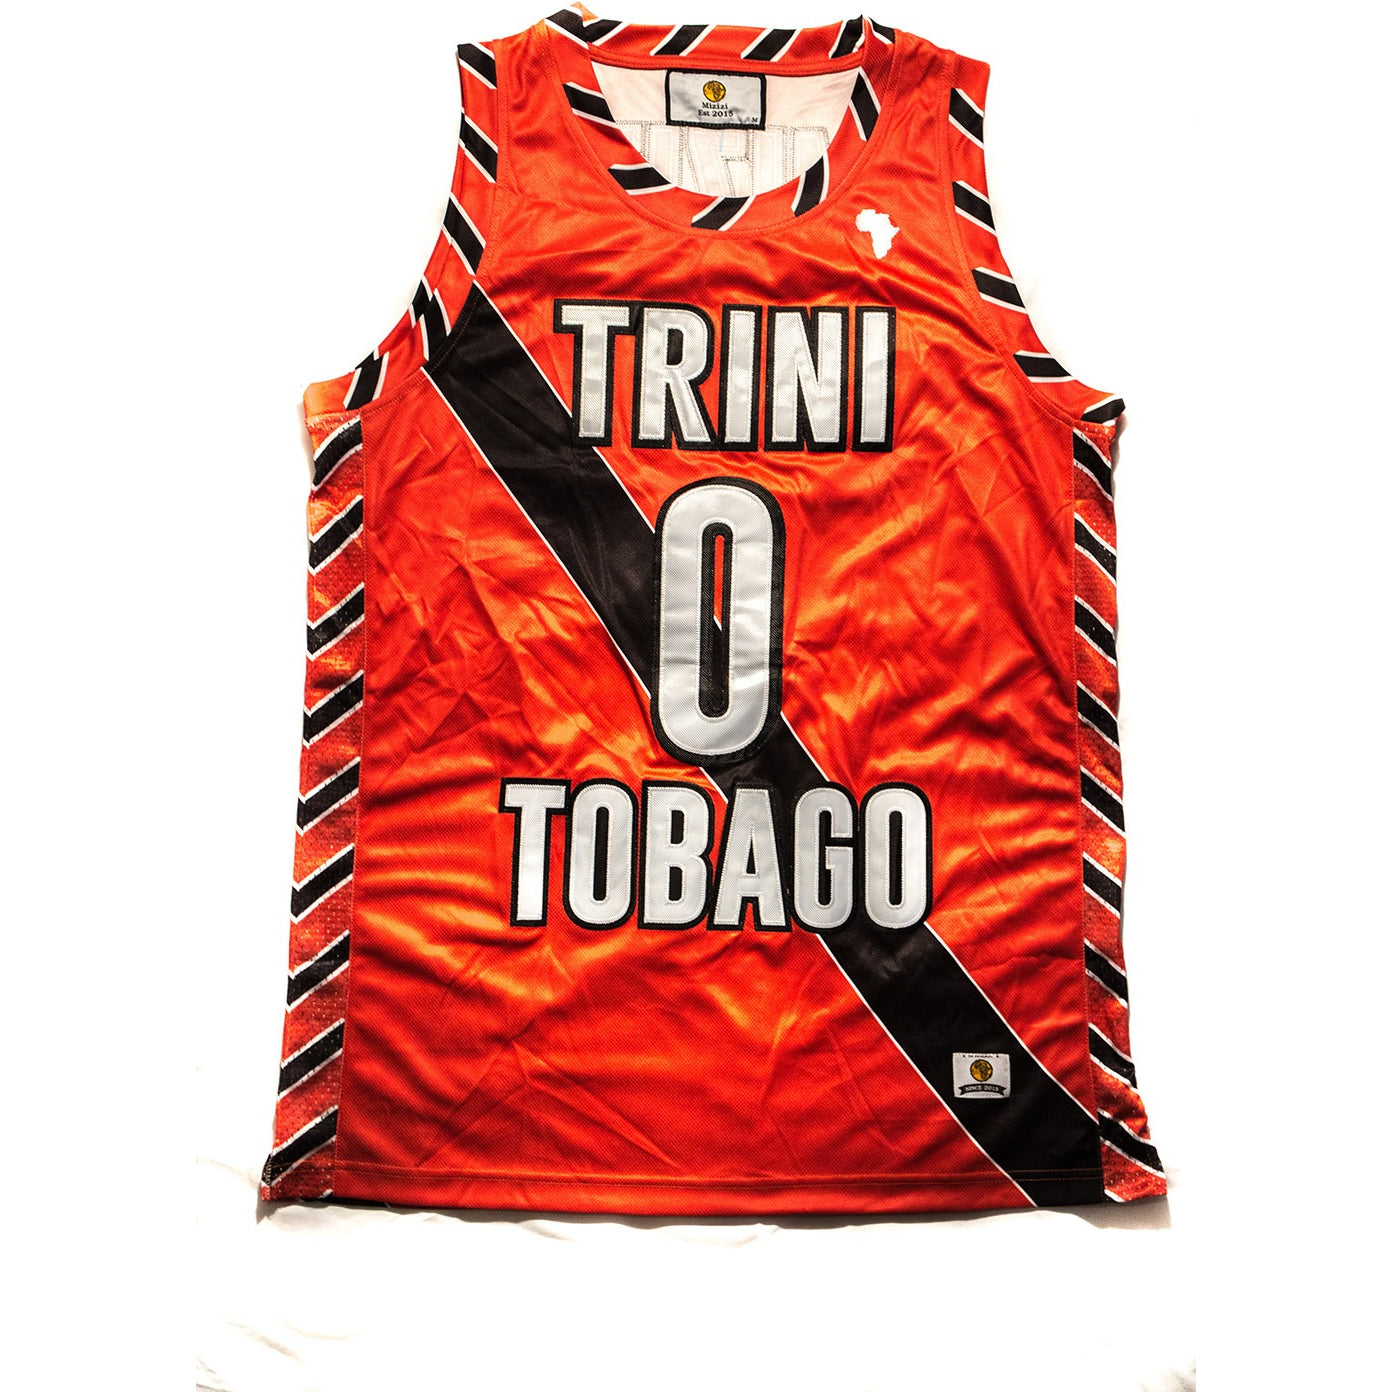 Trinidad and Tobago Basketball Jersey - MiziziShop